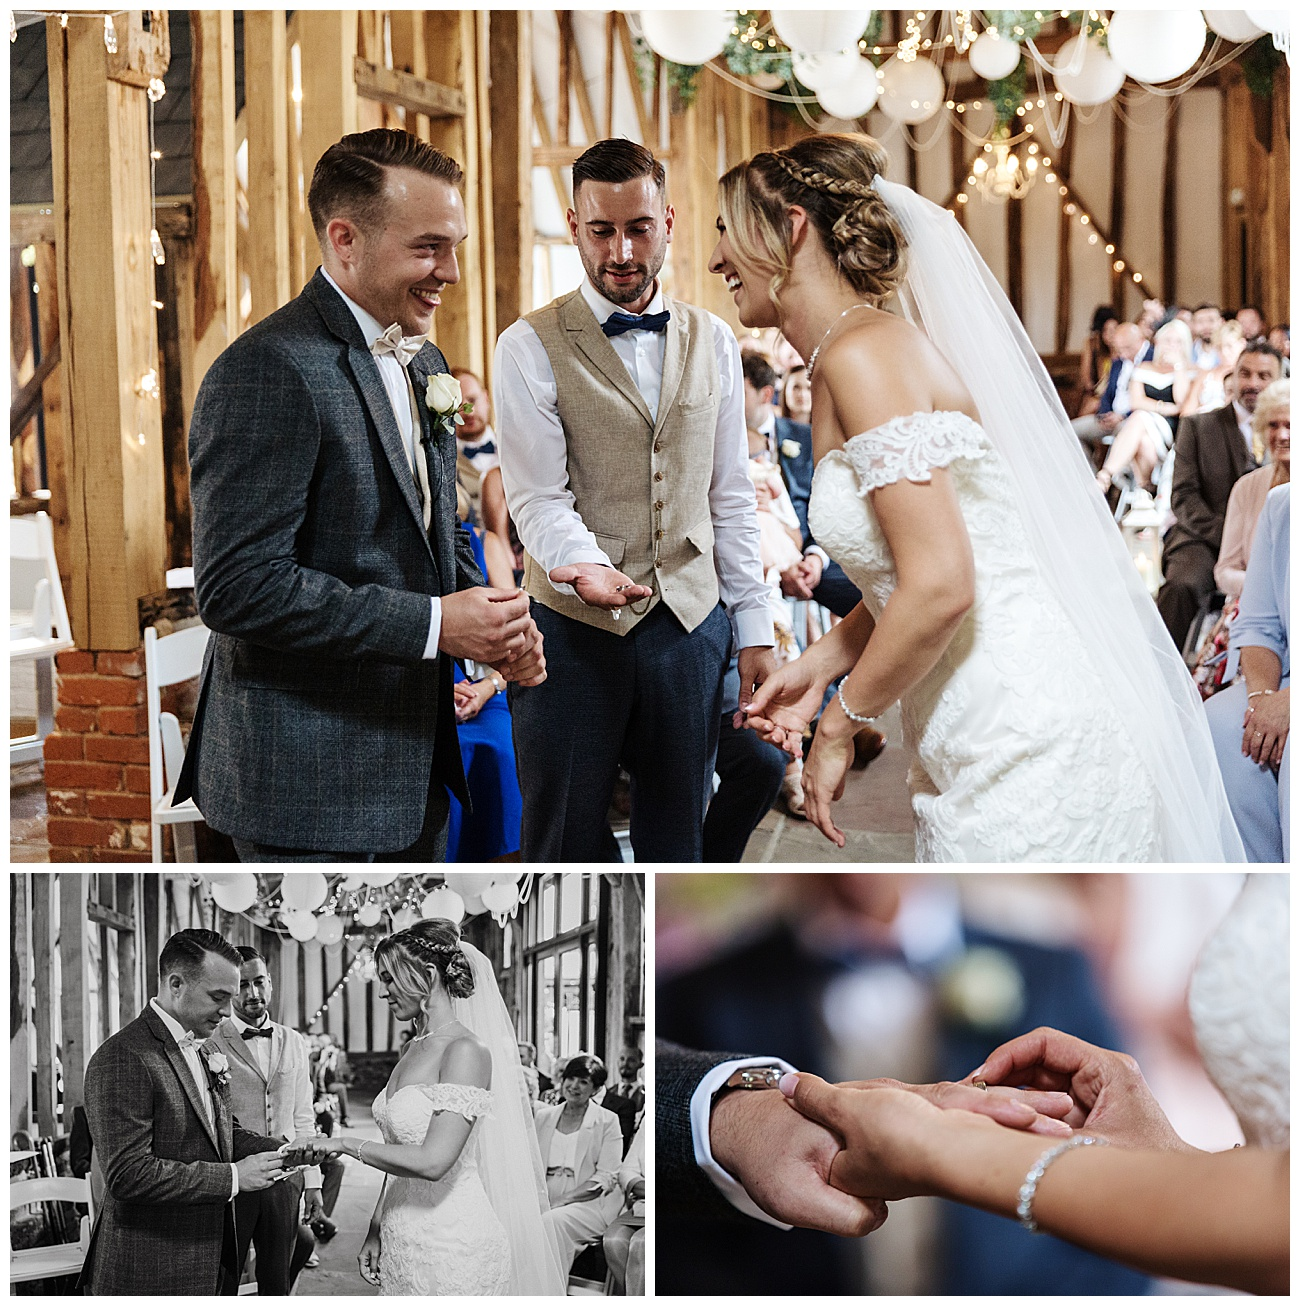 The exchange of wedding rings at the alter